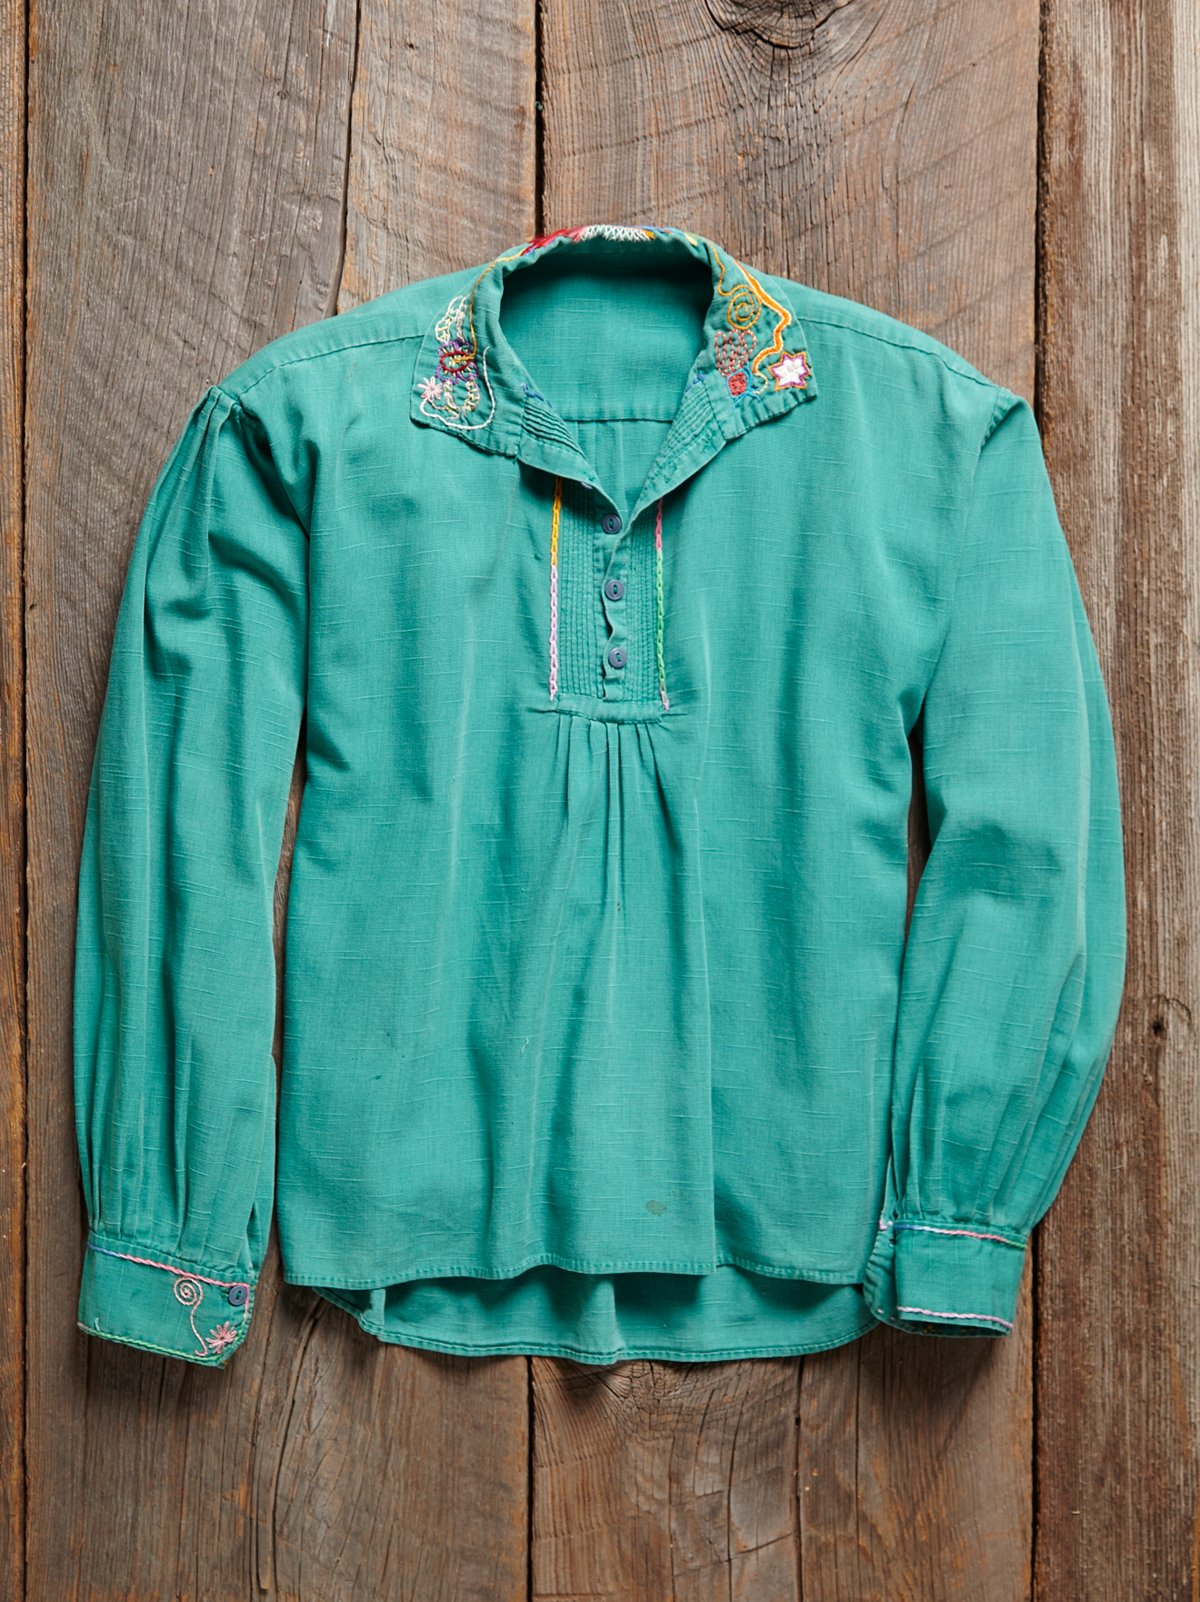 Vintage 1930s Turquoise Shirt